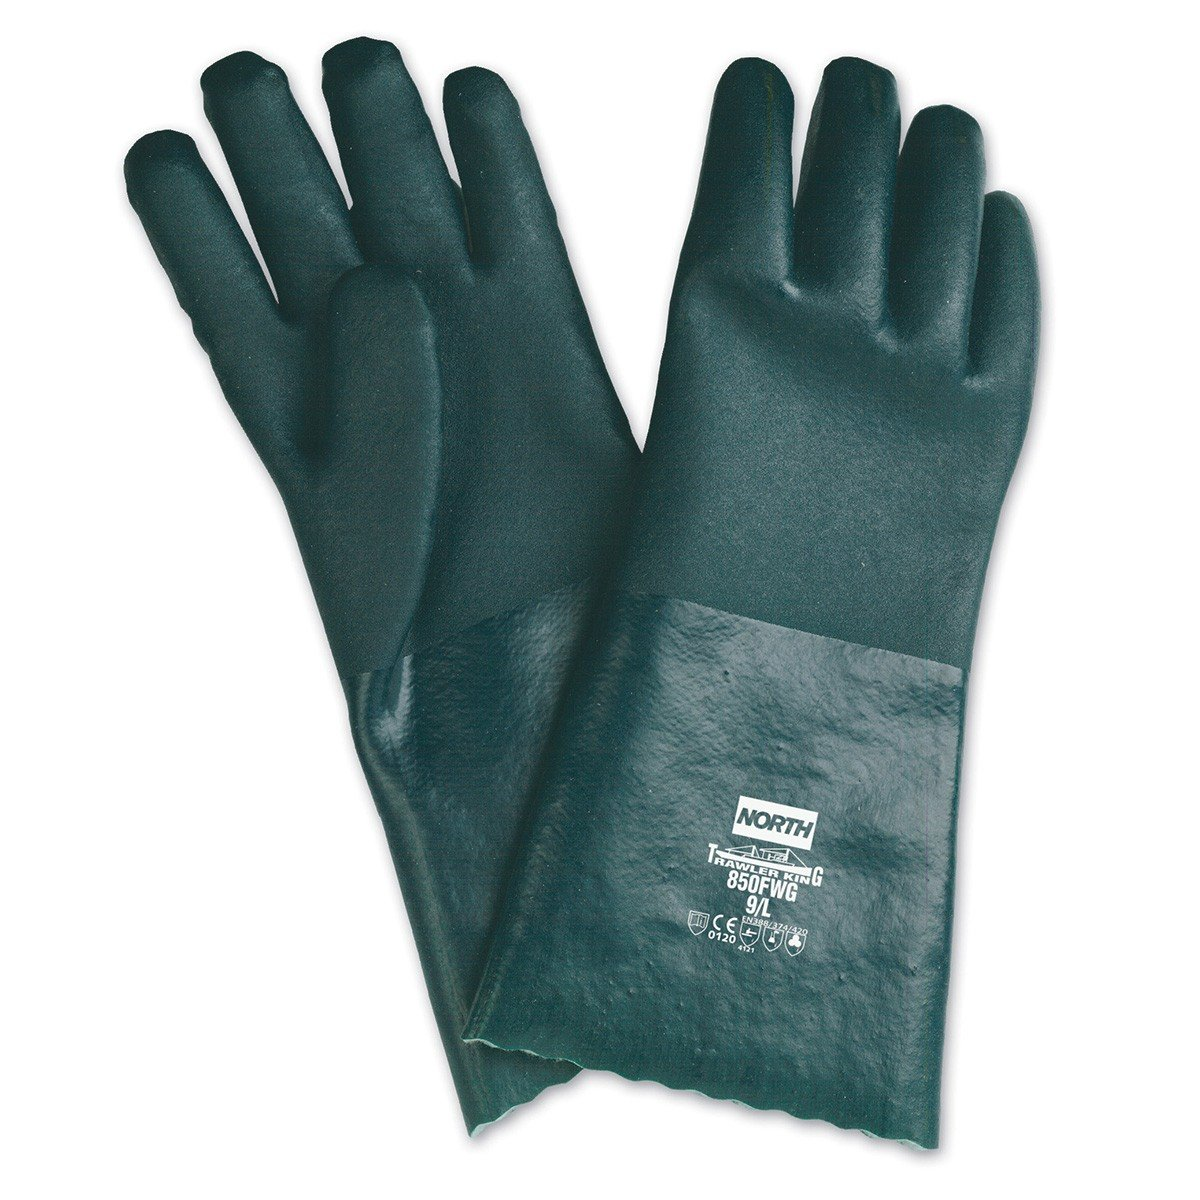 North 850FWG/10XL Honeywell Chemical Resistant Green PVC Dipped Palm Coated Work Gloves with Interlock Knit Liner And Gauntlet Cuff, Size 10 by North B00IUN4VOK